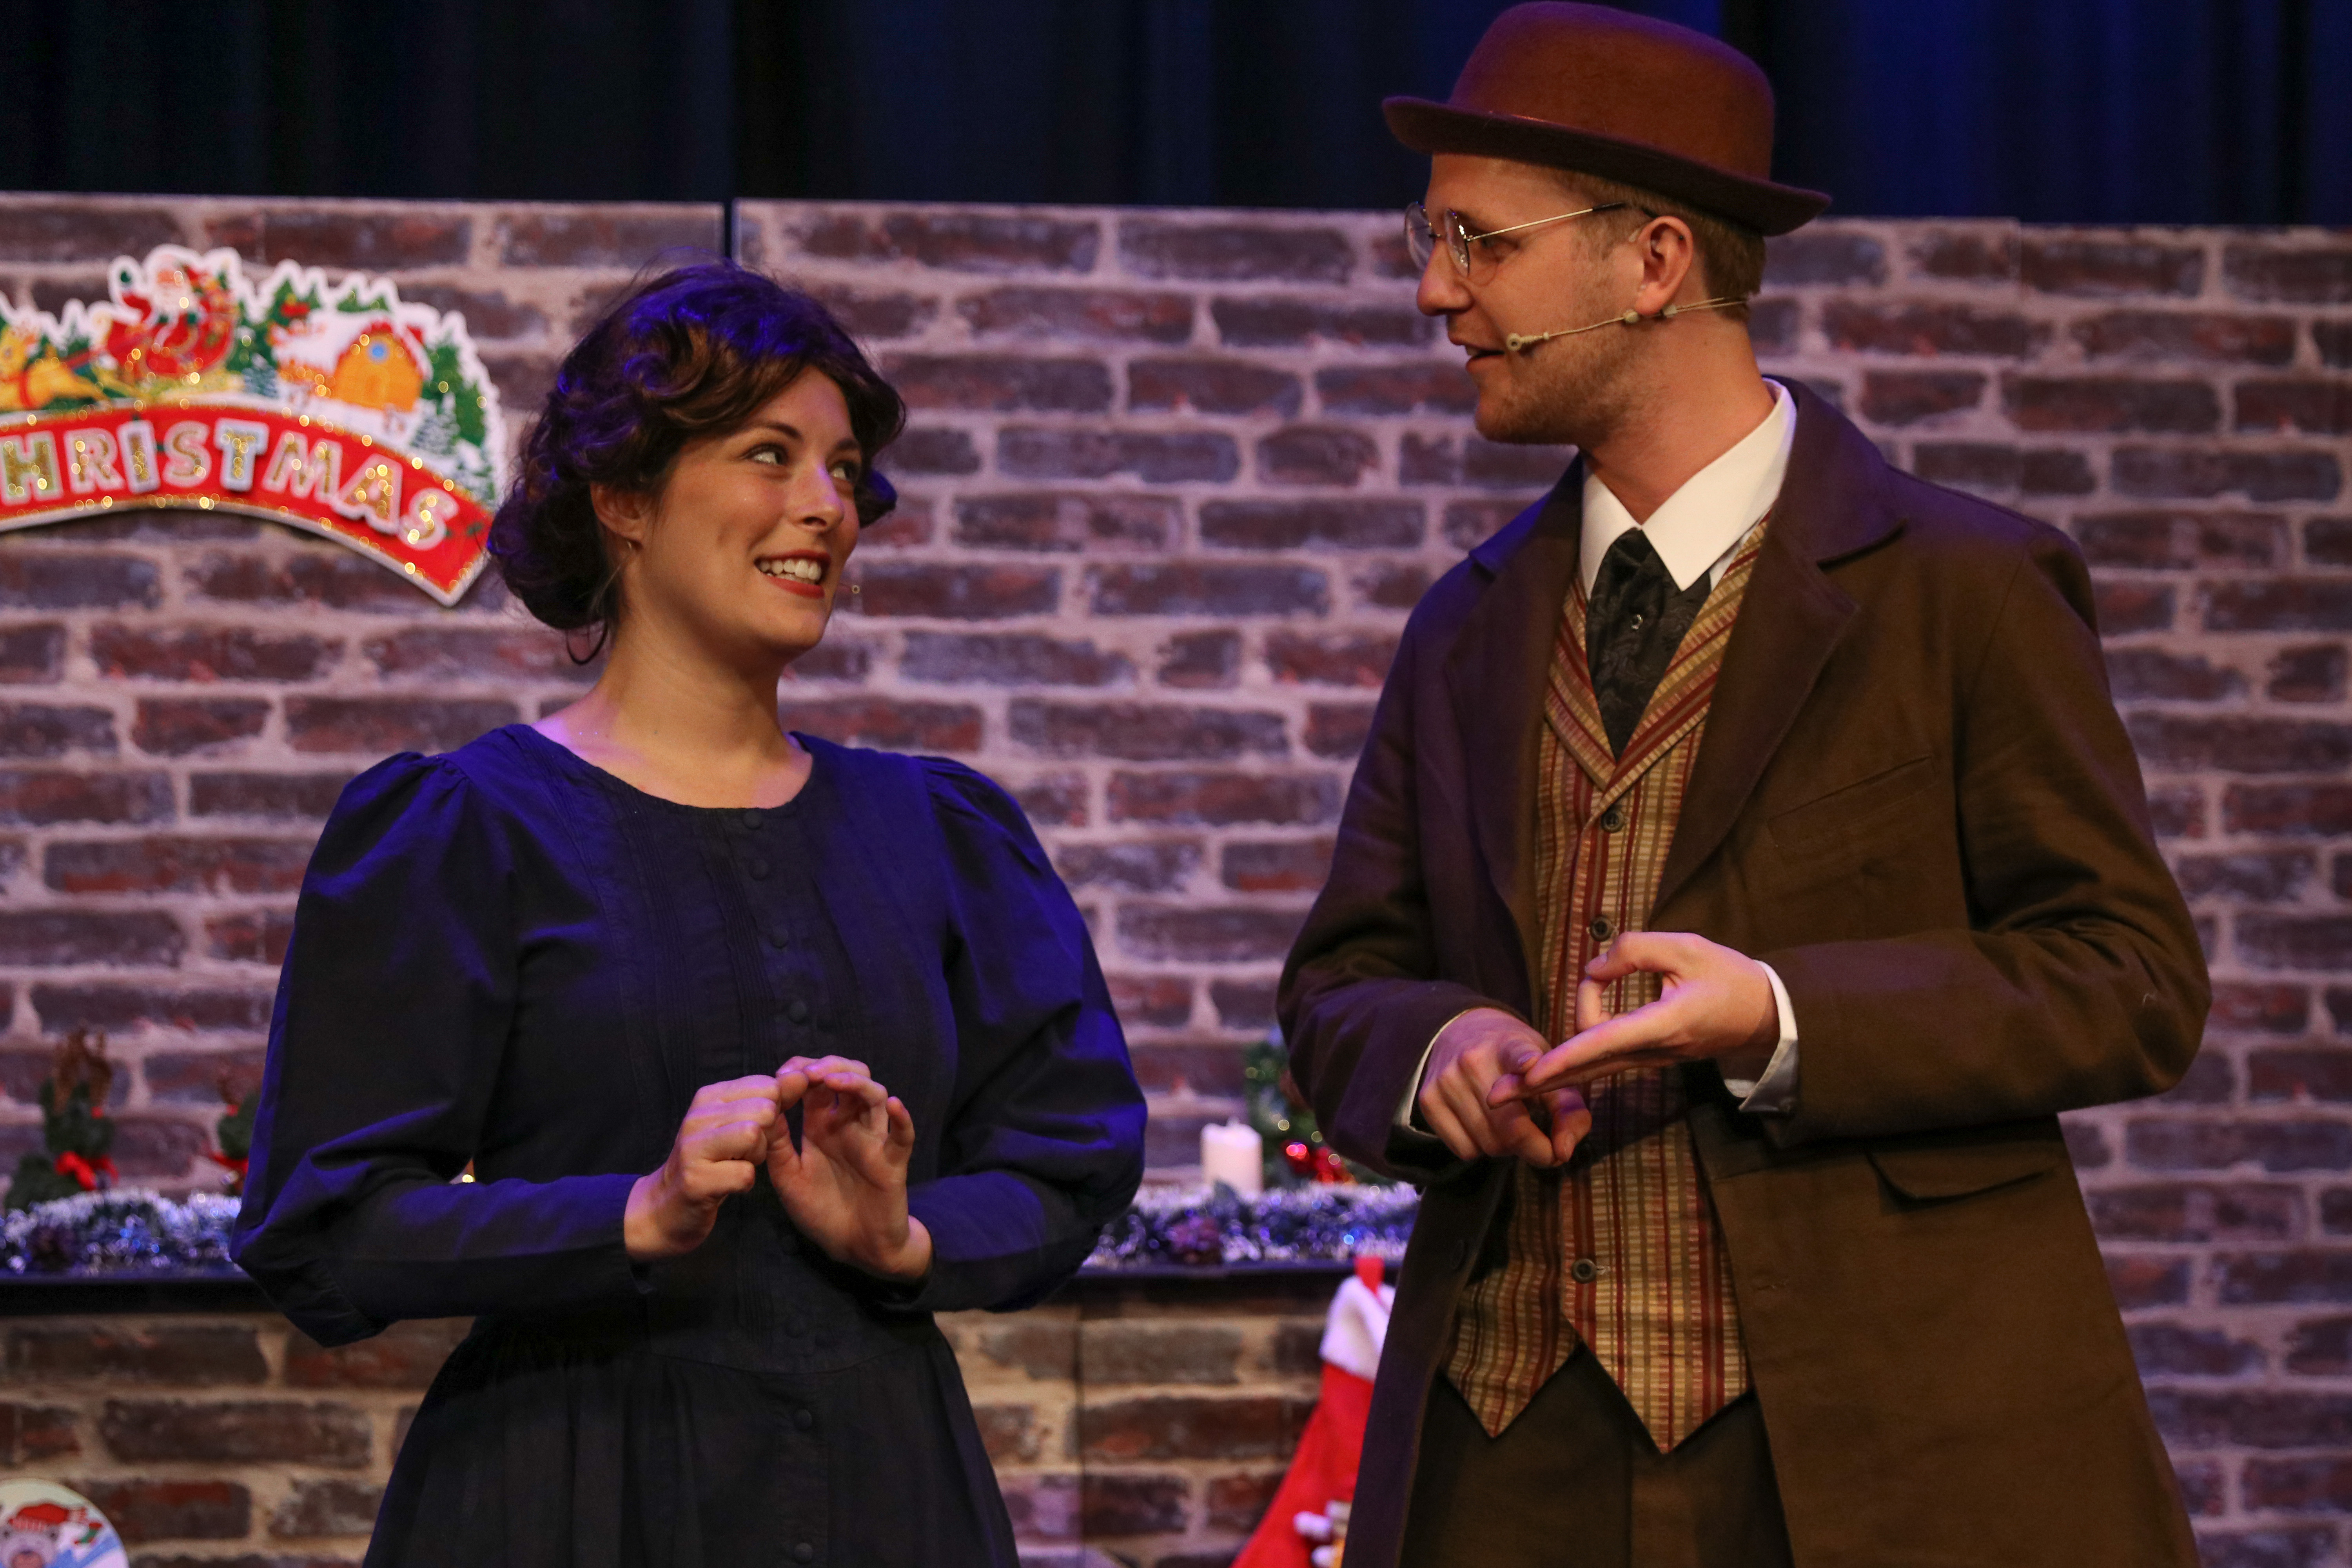 Mrs Cratchit & Bob Cratchit